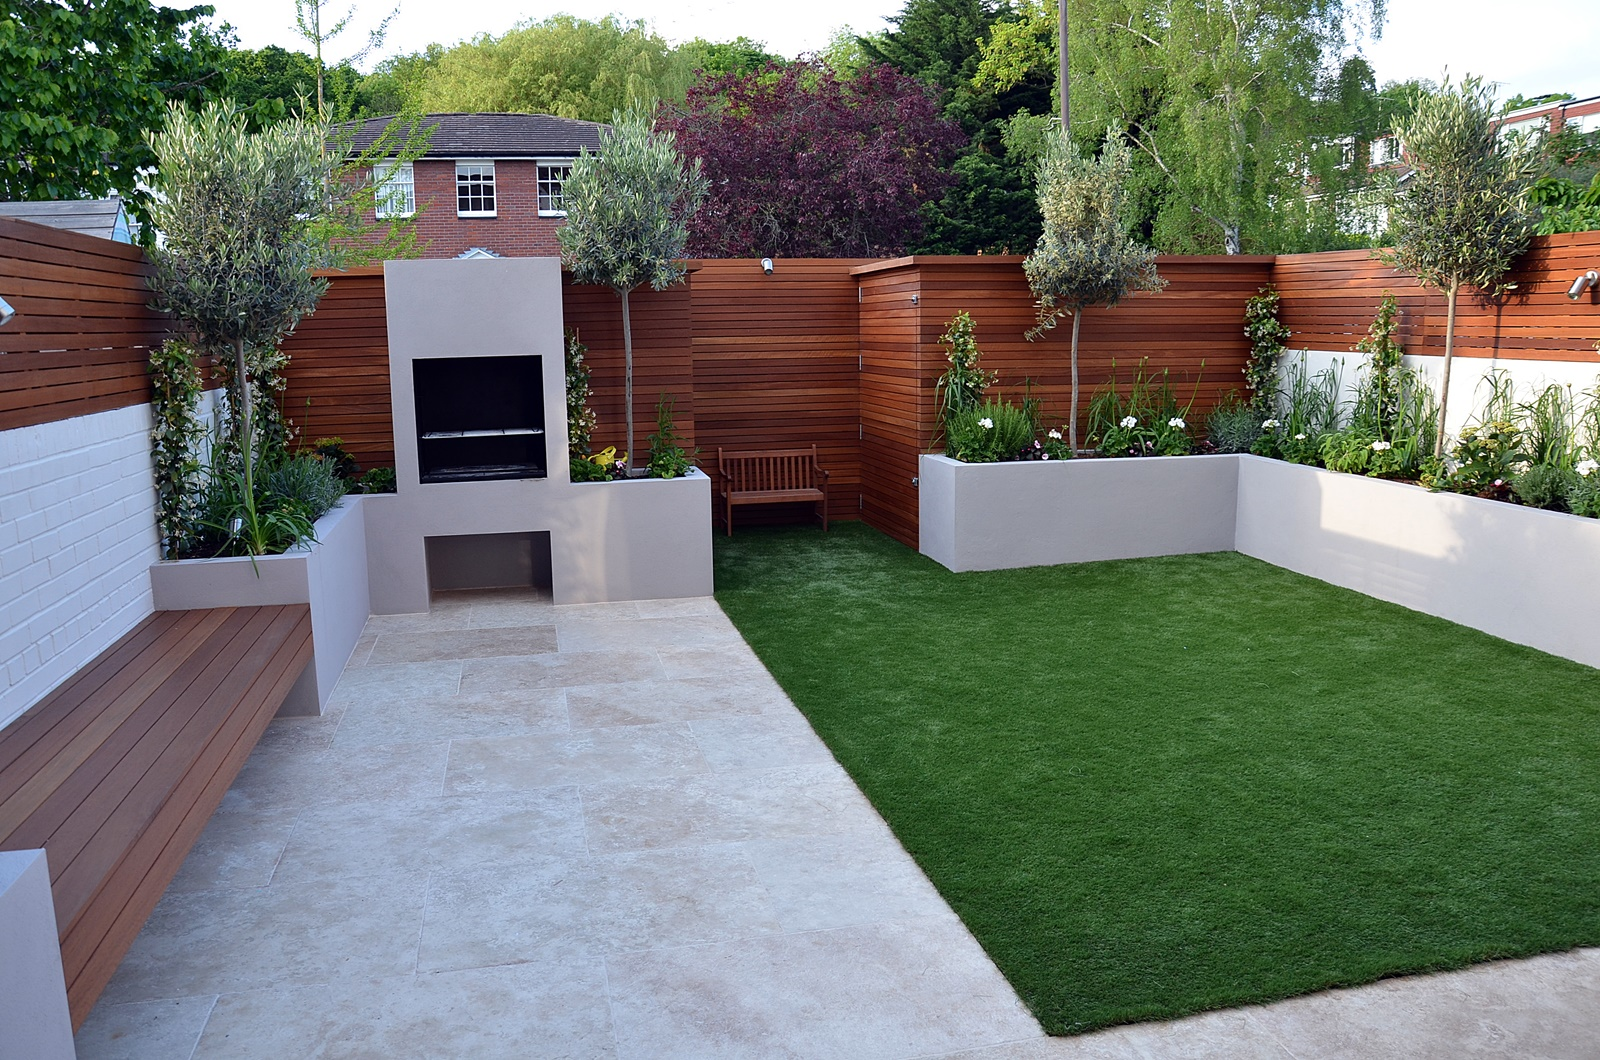 Modern garden design fulham chelsea clapham battersea for Design my garden ideas